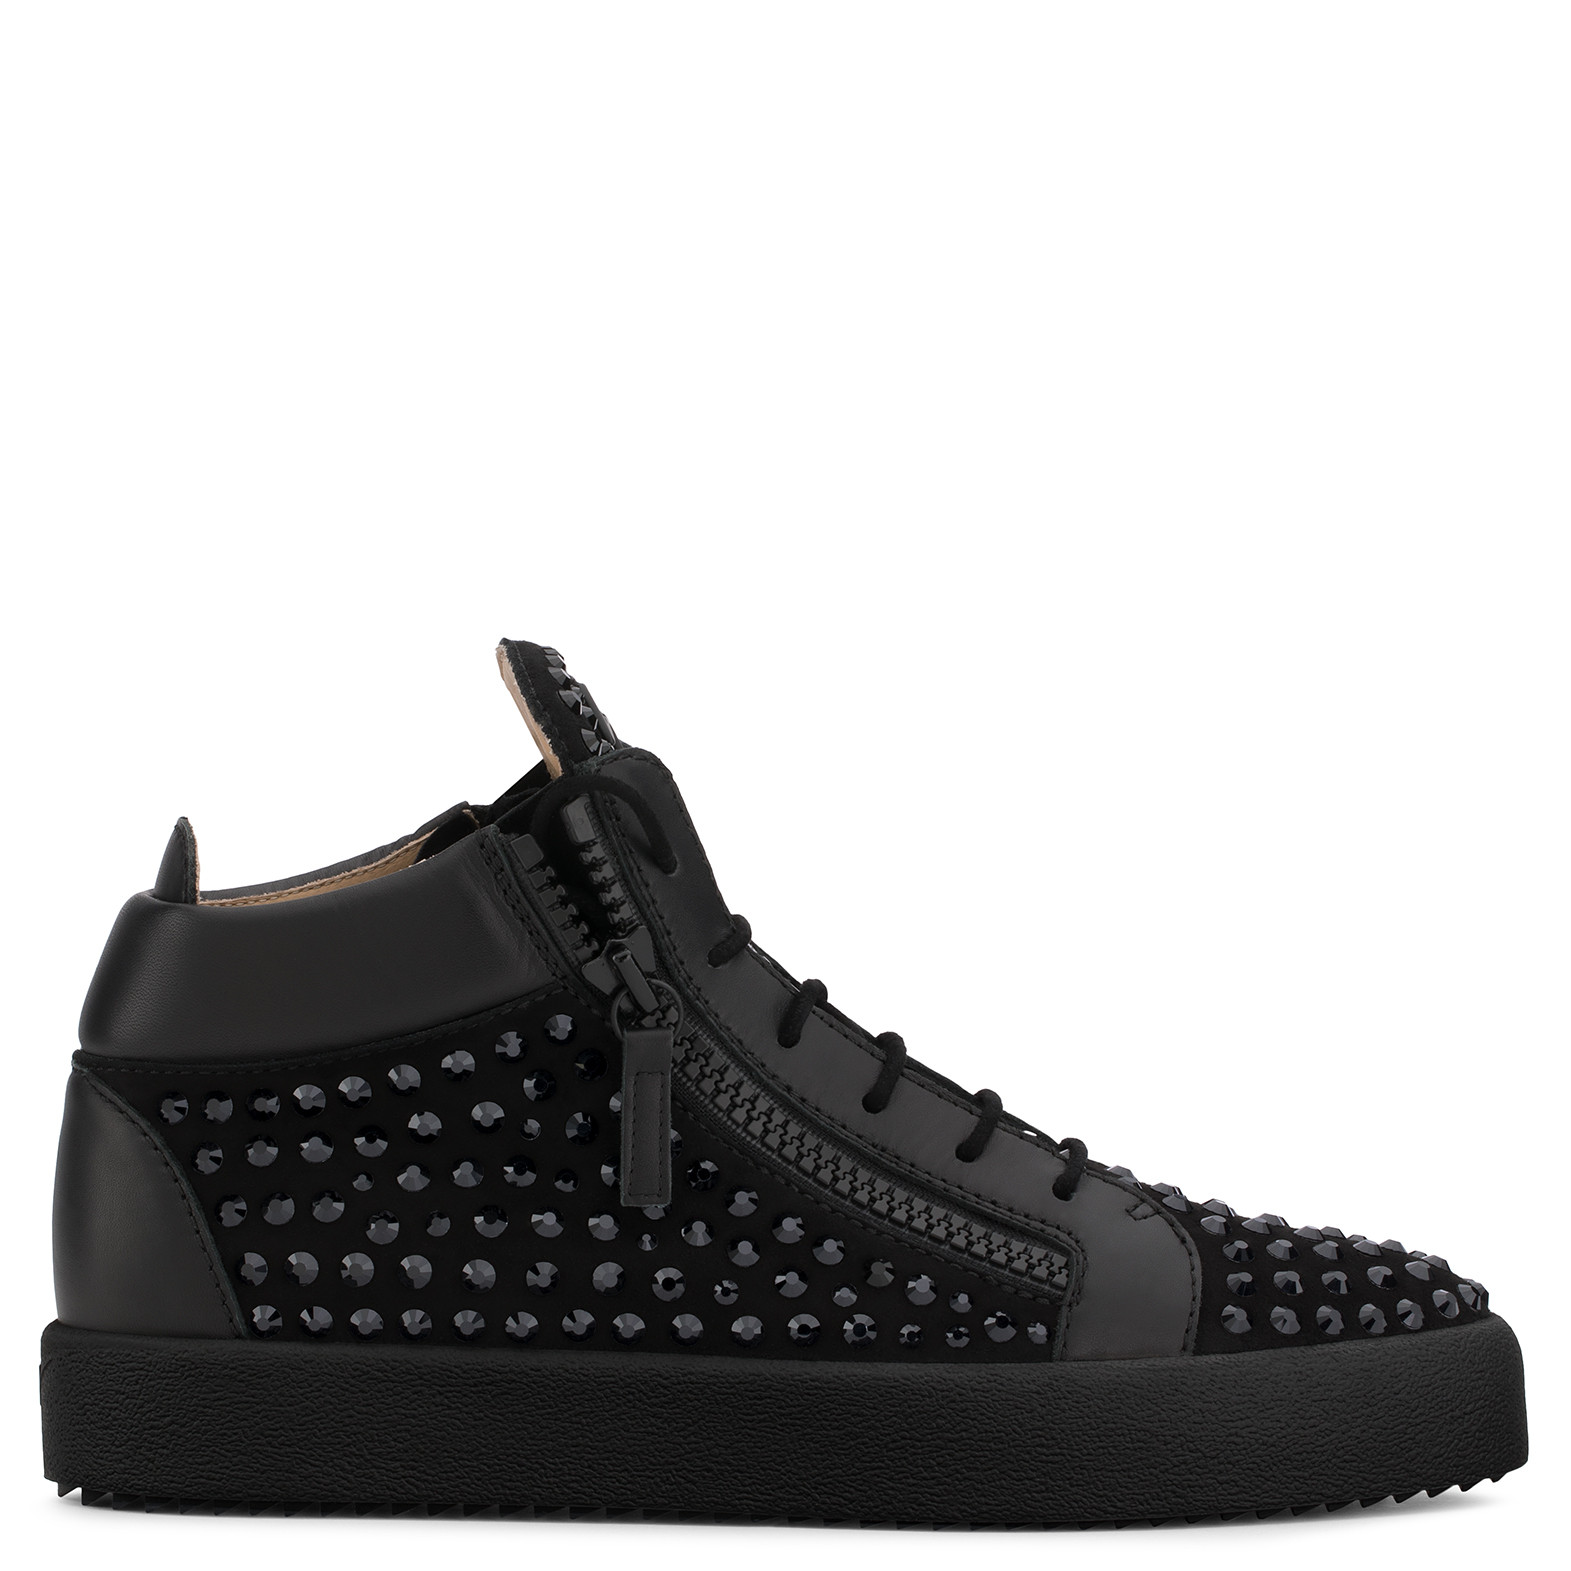 Cheap Price In China Giuseppe Zanotti Black suede low-top sneaker with crystals DORIS LOW Cheap Sale Pre Order I2NwyC